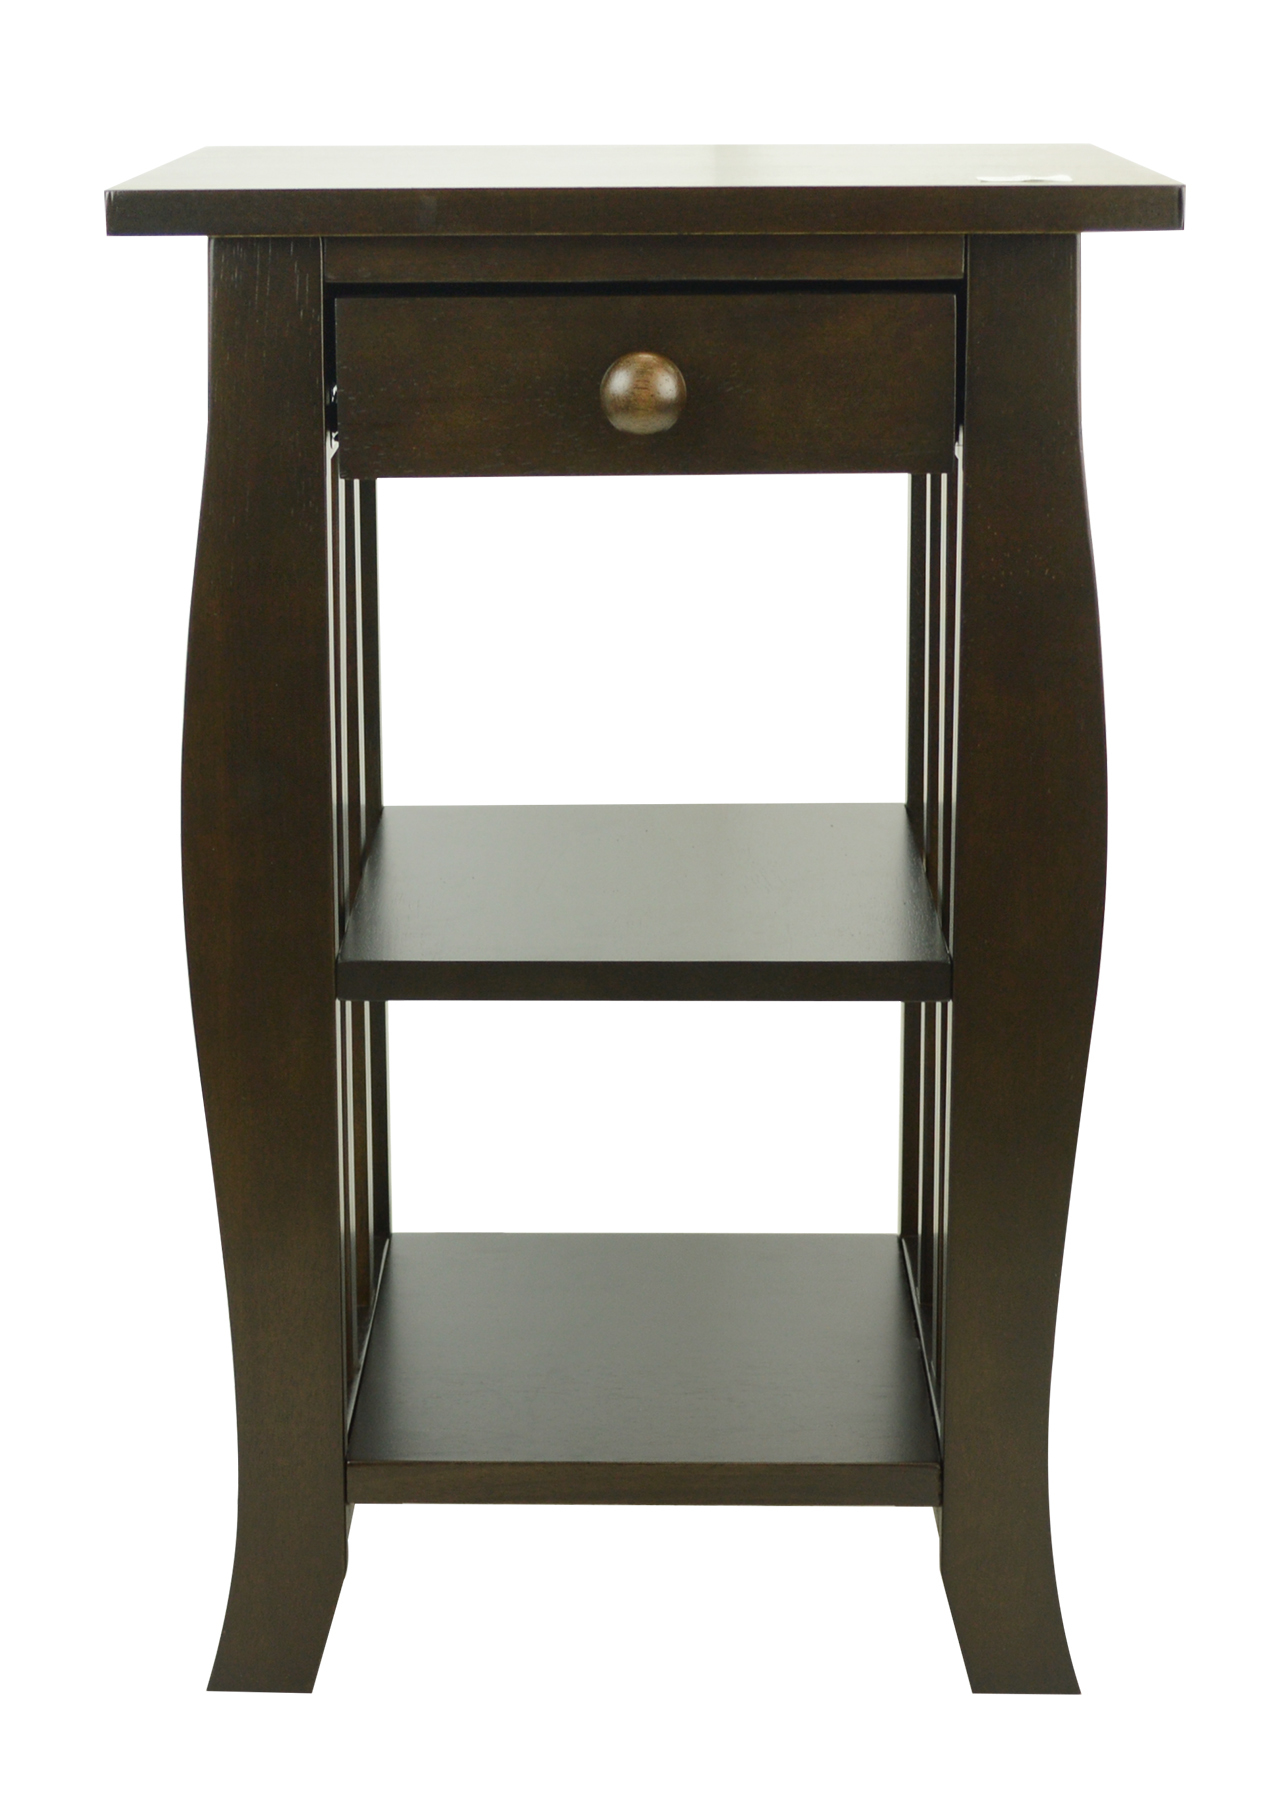 multi rack rome II  24inches FRONT.jpg